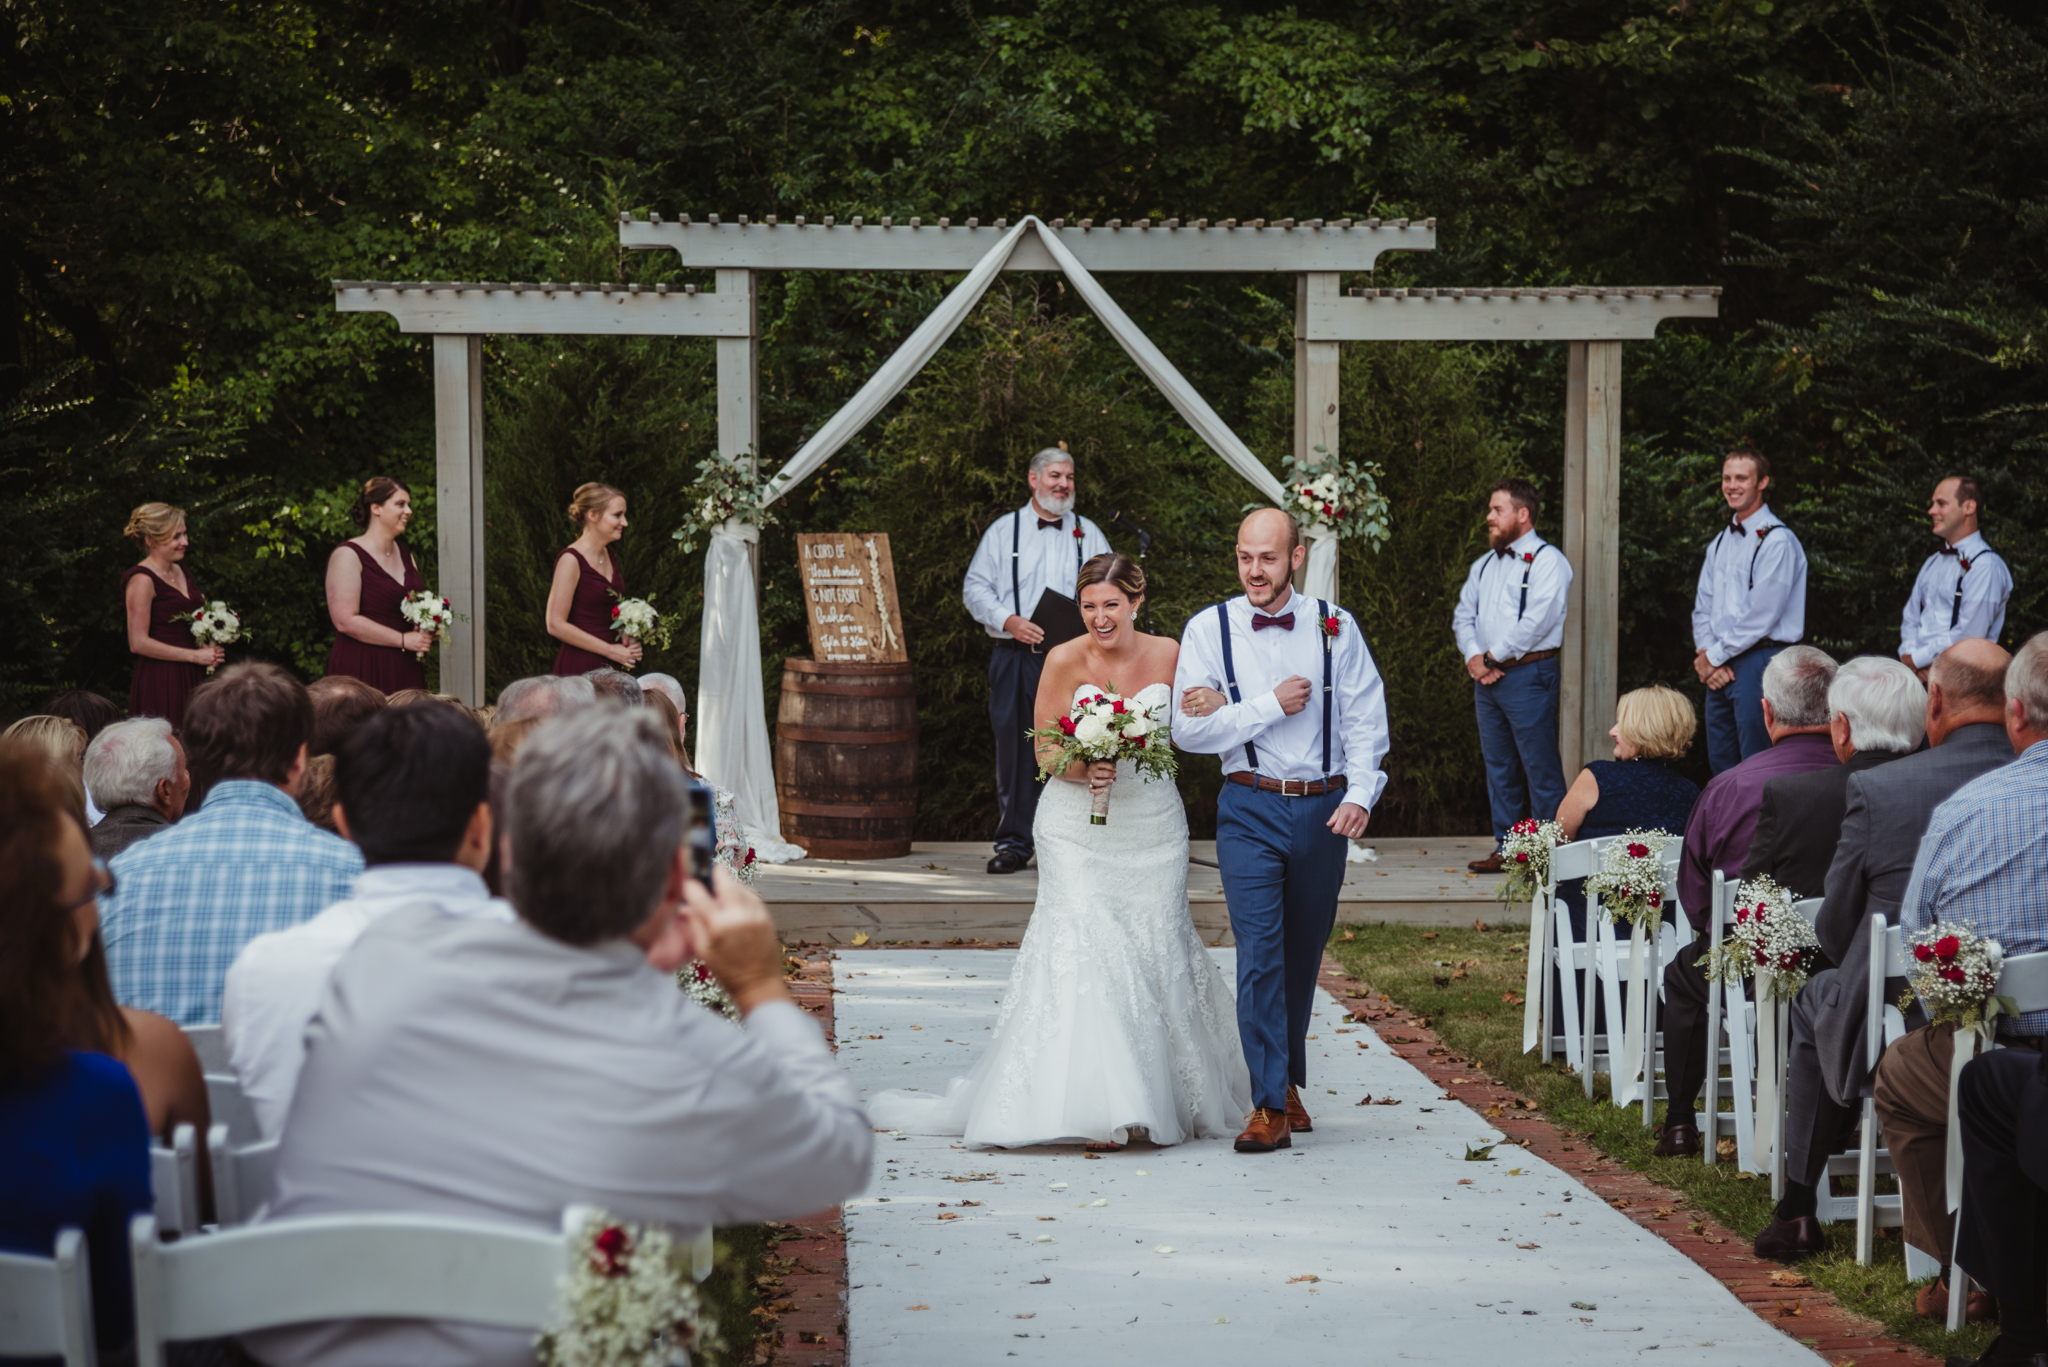 Raleigh-wedding-photographer-bride-and-groom-walk-down-the-aisle-cedar-grove-acres-rose-trail-images.jpg